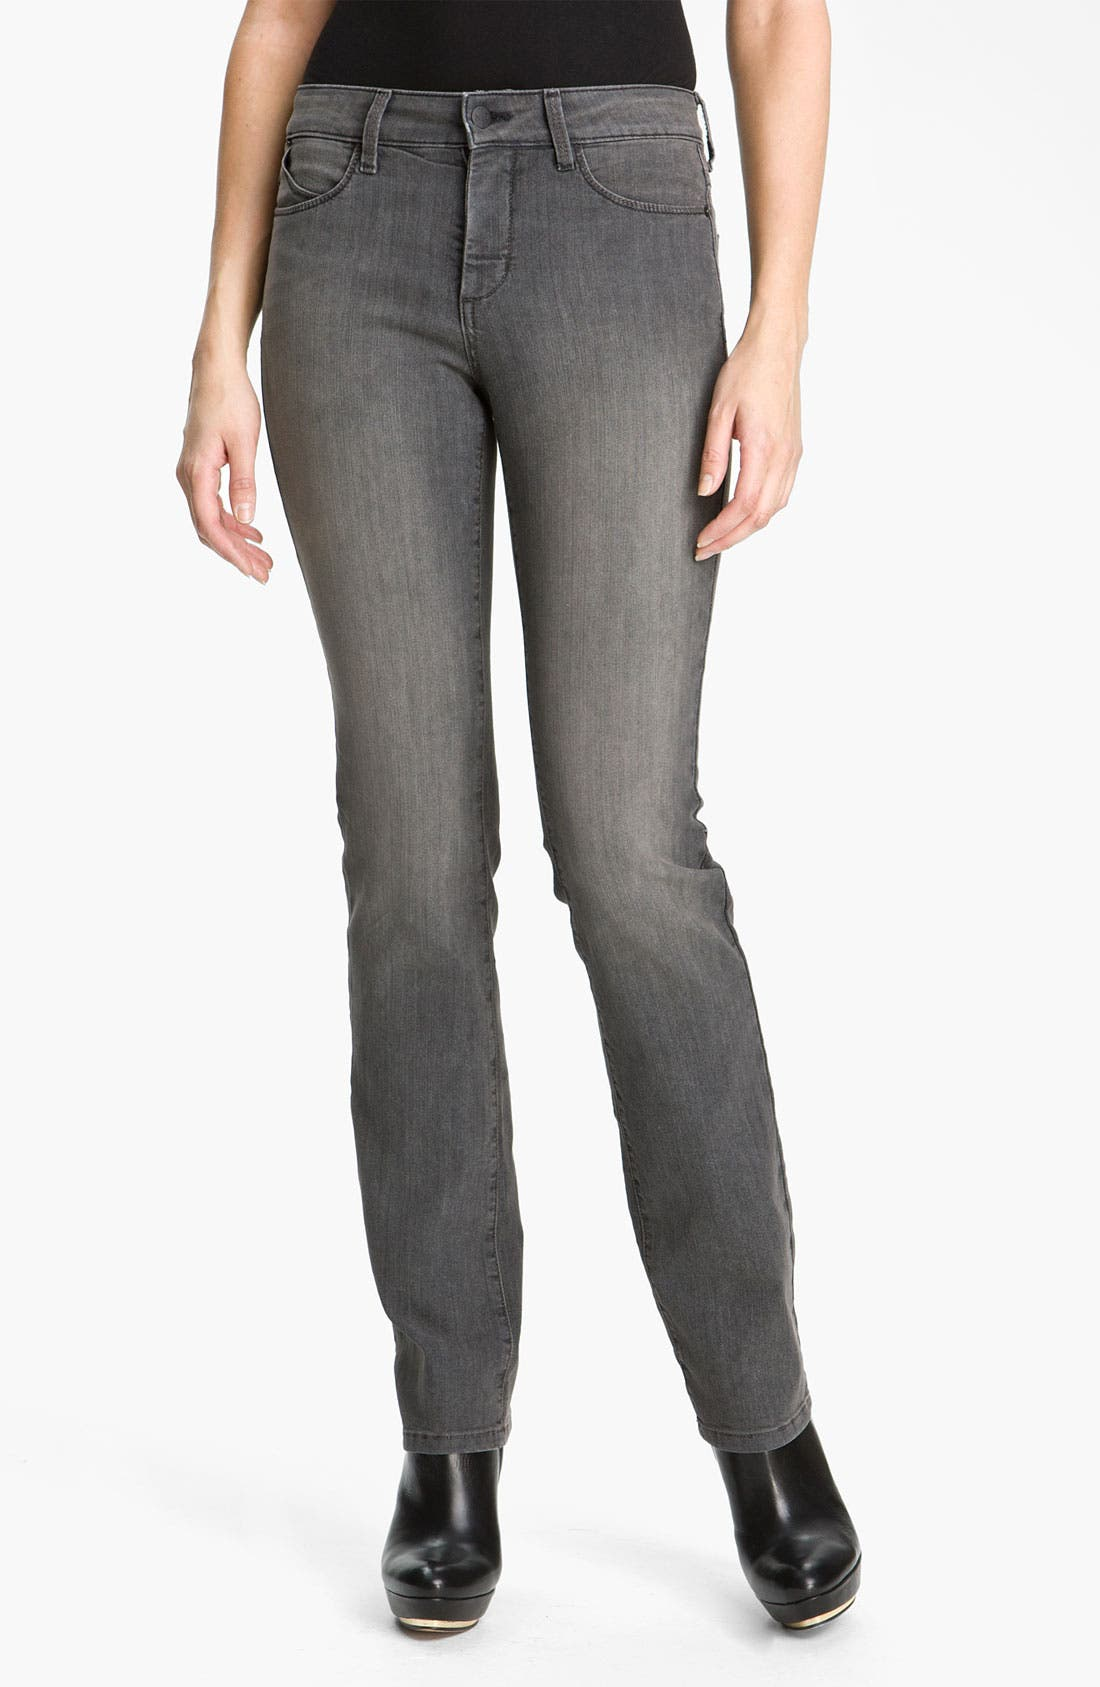 Alternate Image 1 Selected - NYDJ 'Marilyn' Straight Leg Stretch Jeans